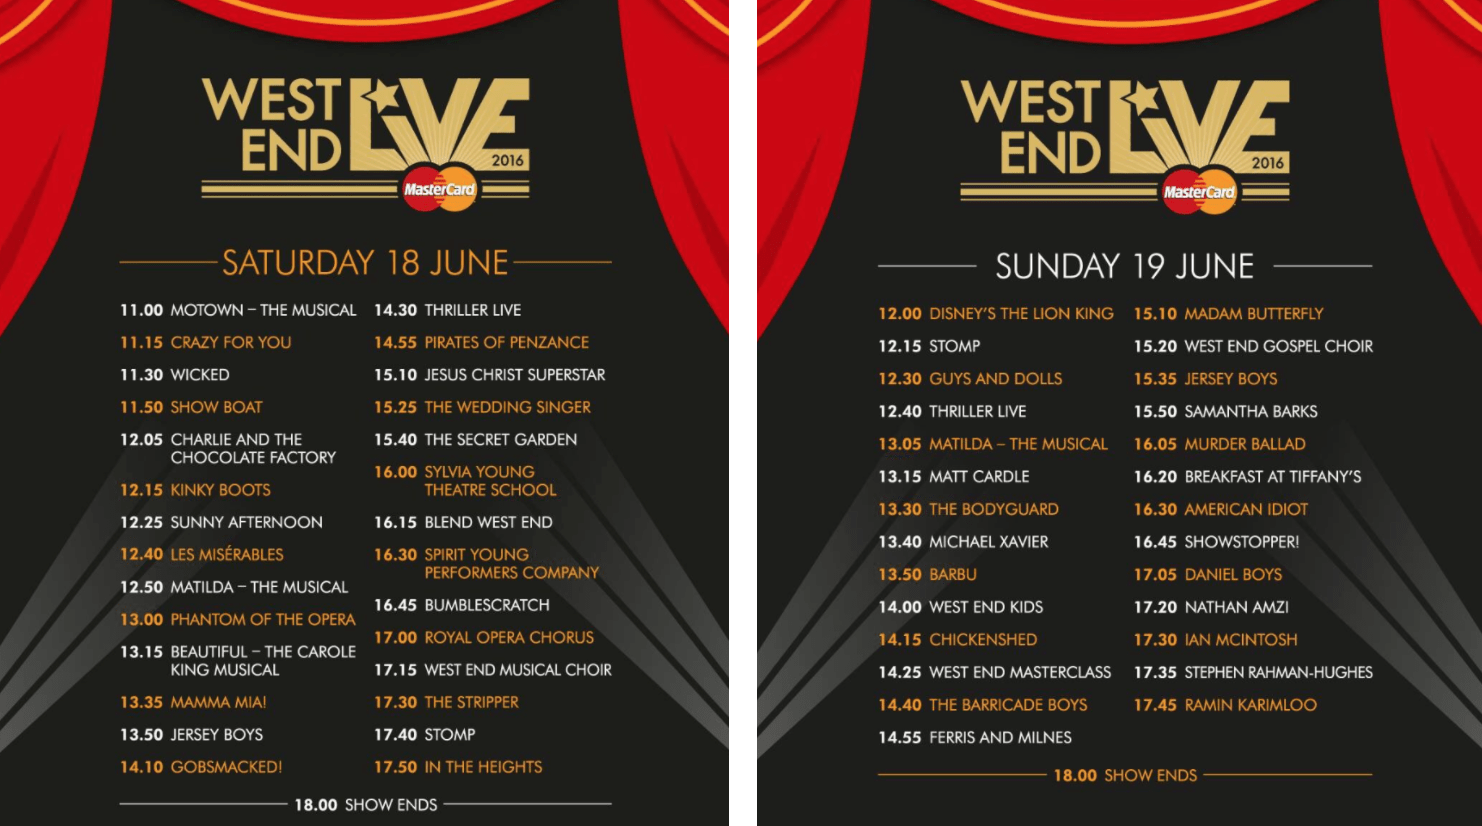 West End Live Schedule Amy Stutz